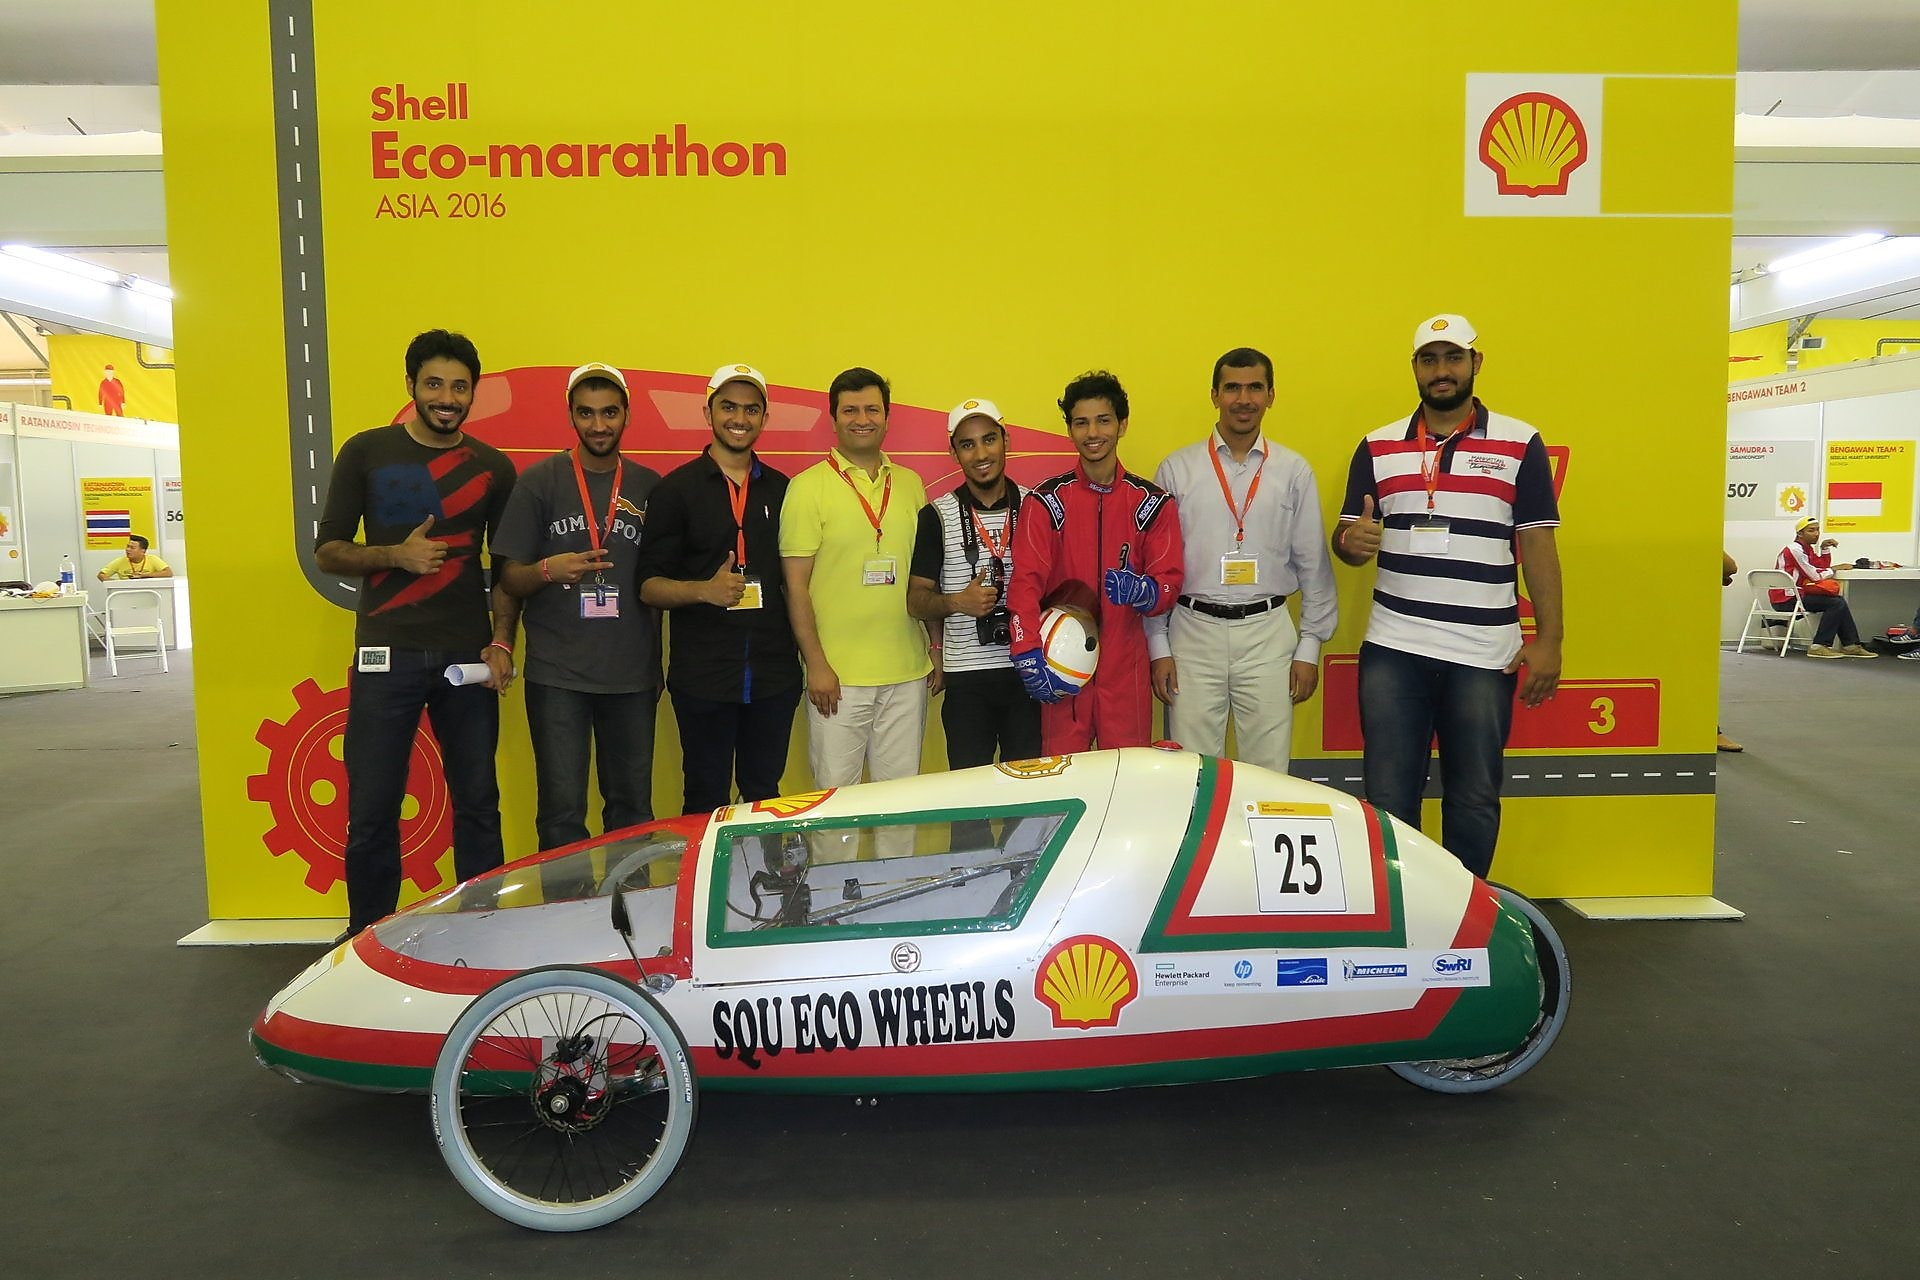 The SQU Eco Wheels, #25, a gasoline prototype vehicle from SQU team at the Sultan Qaboos University in Alkhoudh, Oman, poses for a team portrait during the final day of the Shell Eco-marathon Asia, in Manila, Philippines, Friday, March 4, 2016. (AP Images for Shell)